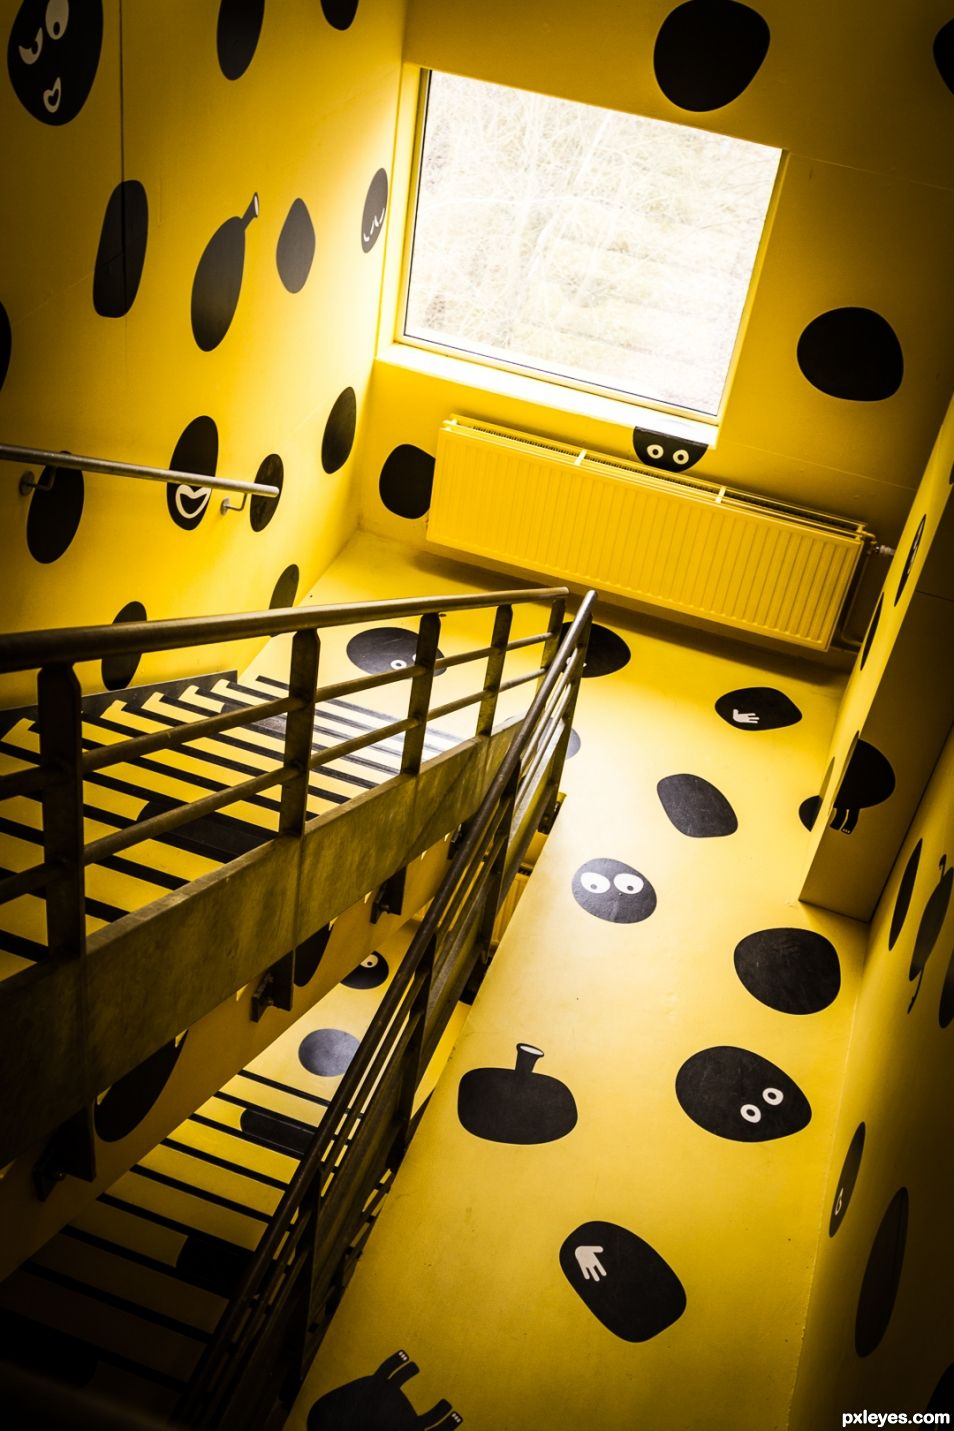 The yellow stairway